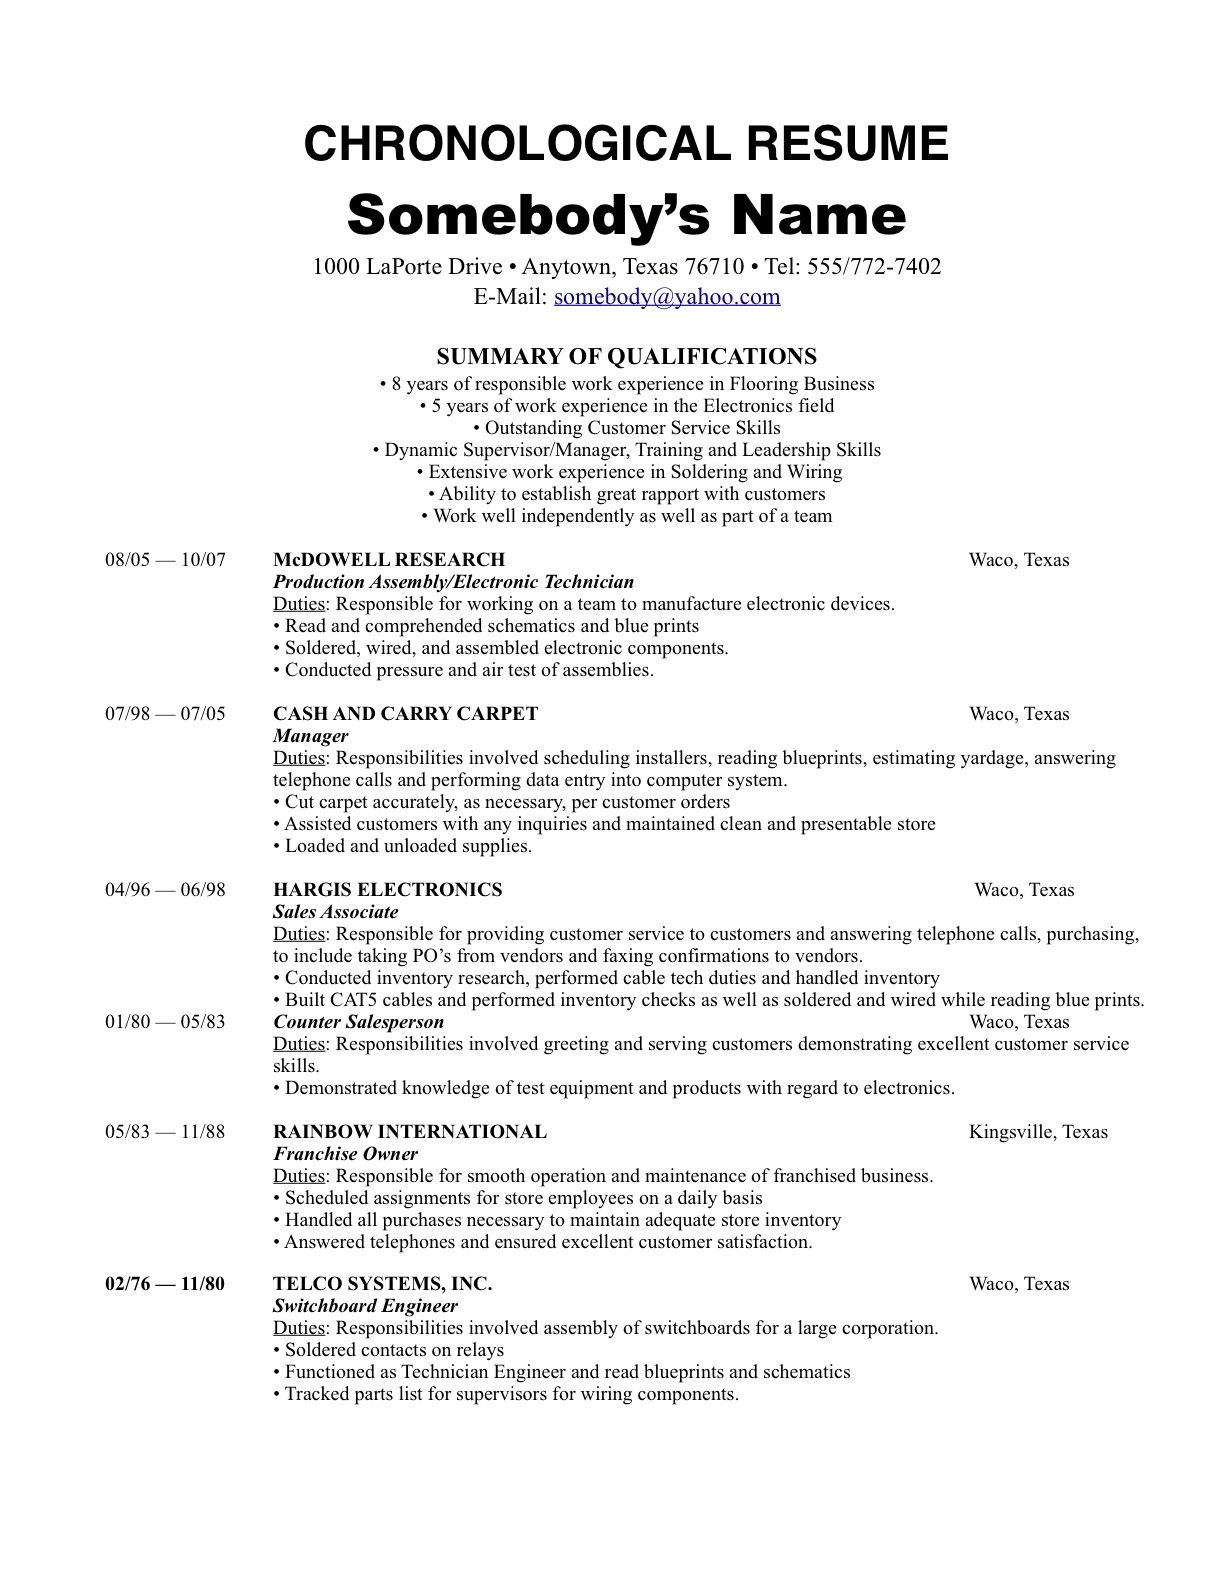 chronological order resume example dcf the most reverse - Picture Of A Resume